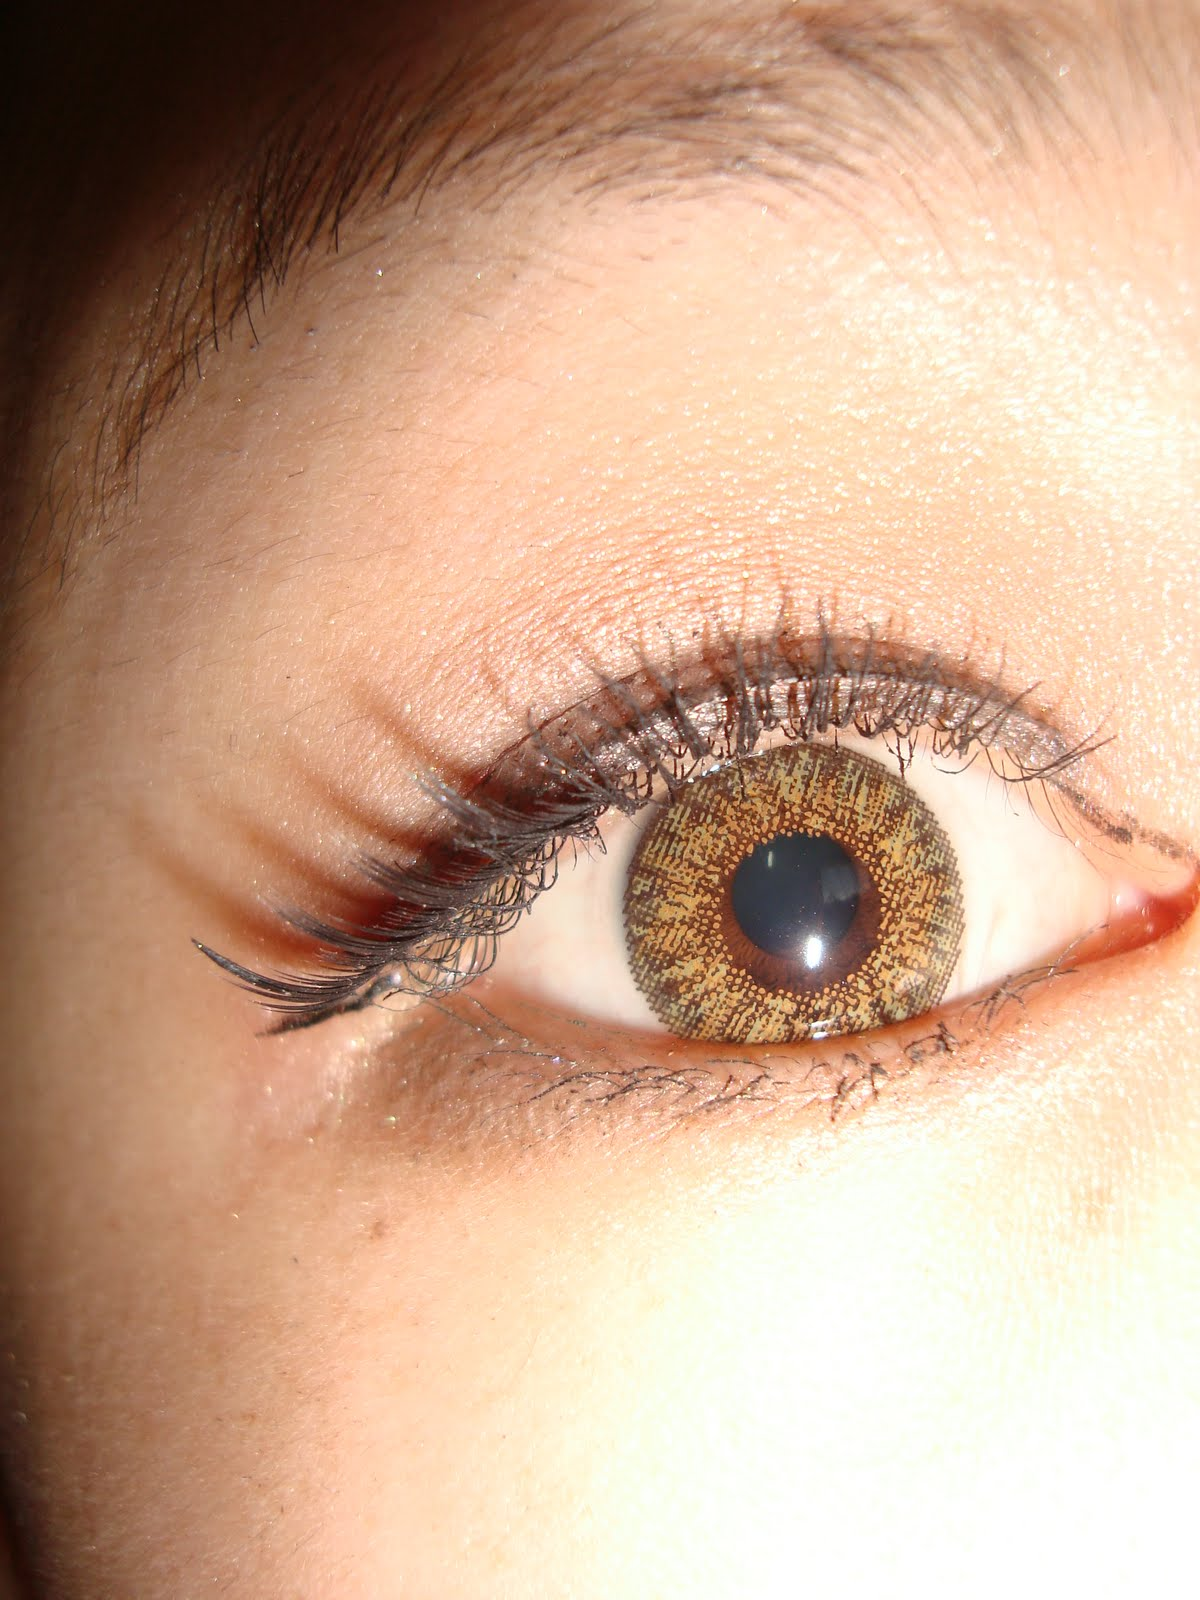 Hazel Eye Makeup And Eye Shadow For: LazybumtToT : Asian Eye Make Up Tutorial Also Suitable For